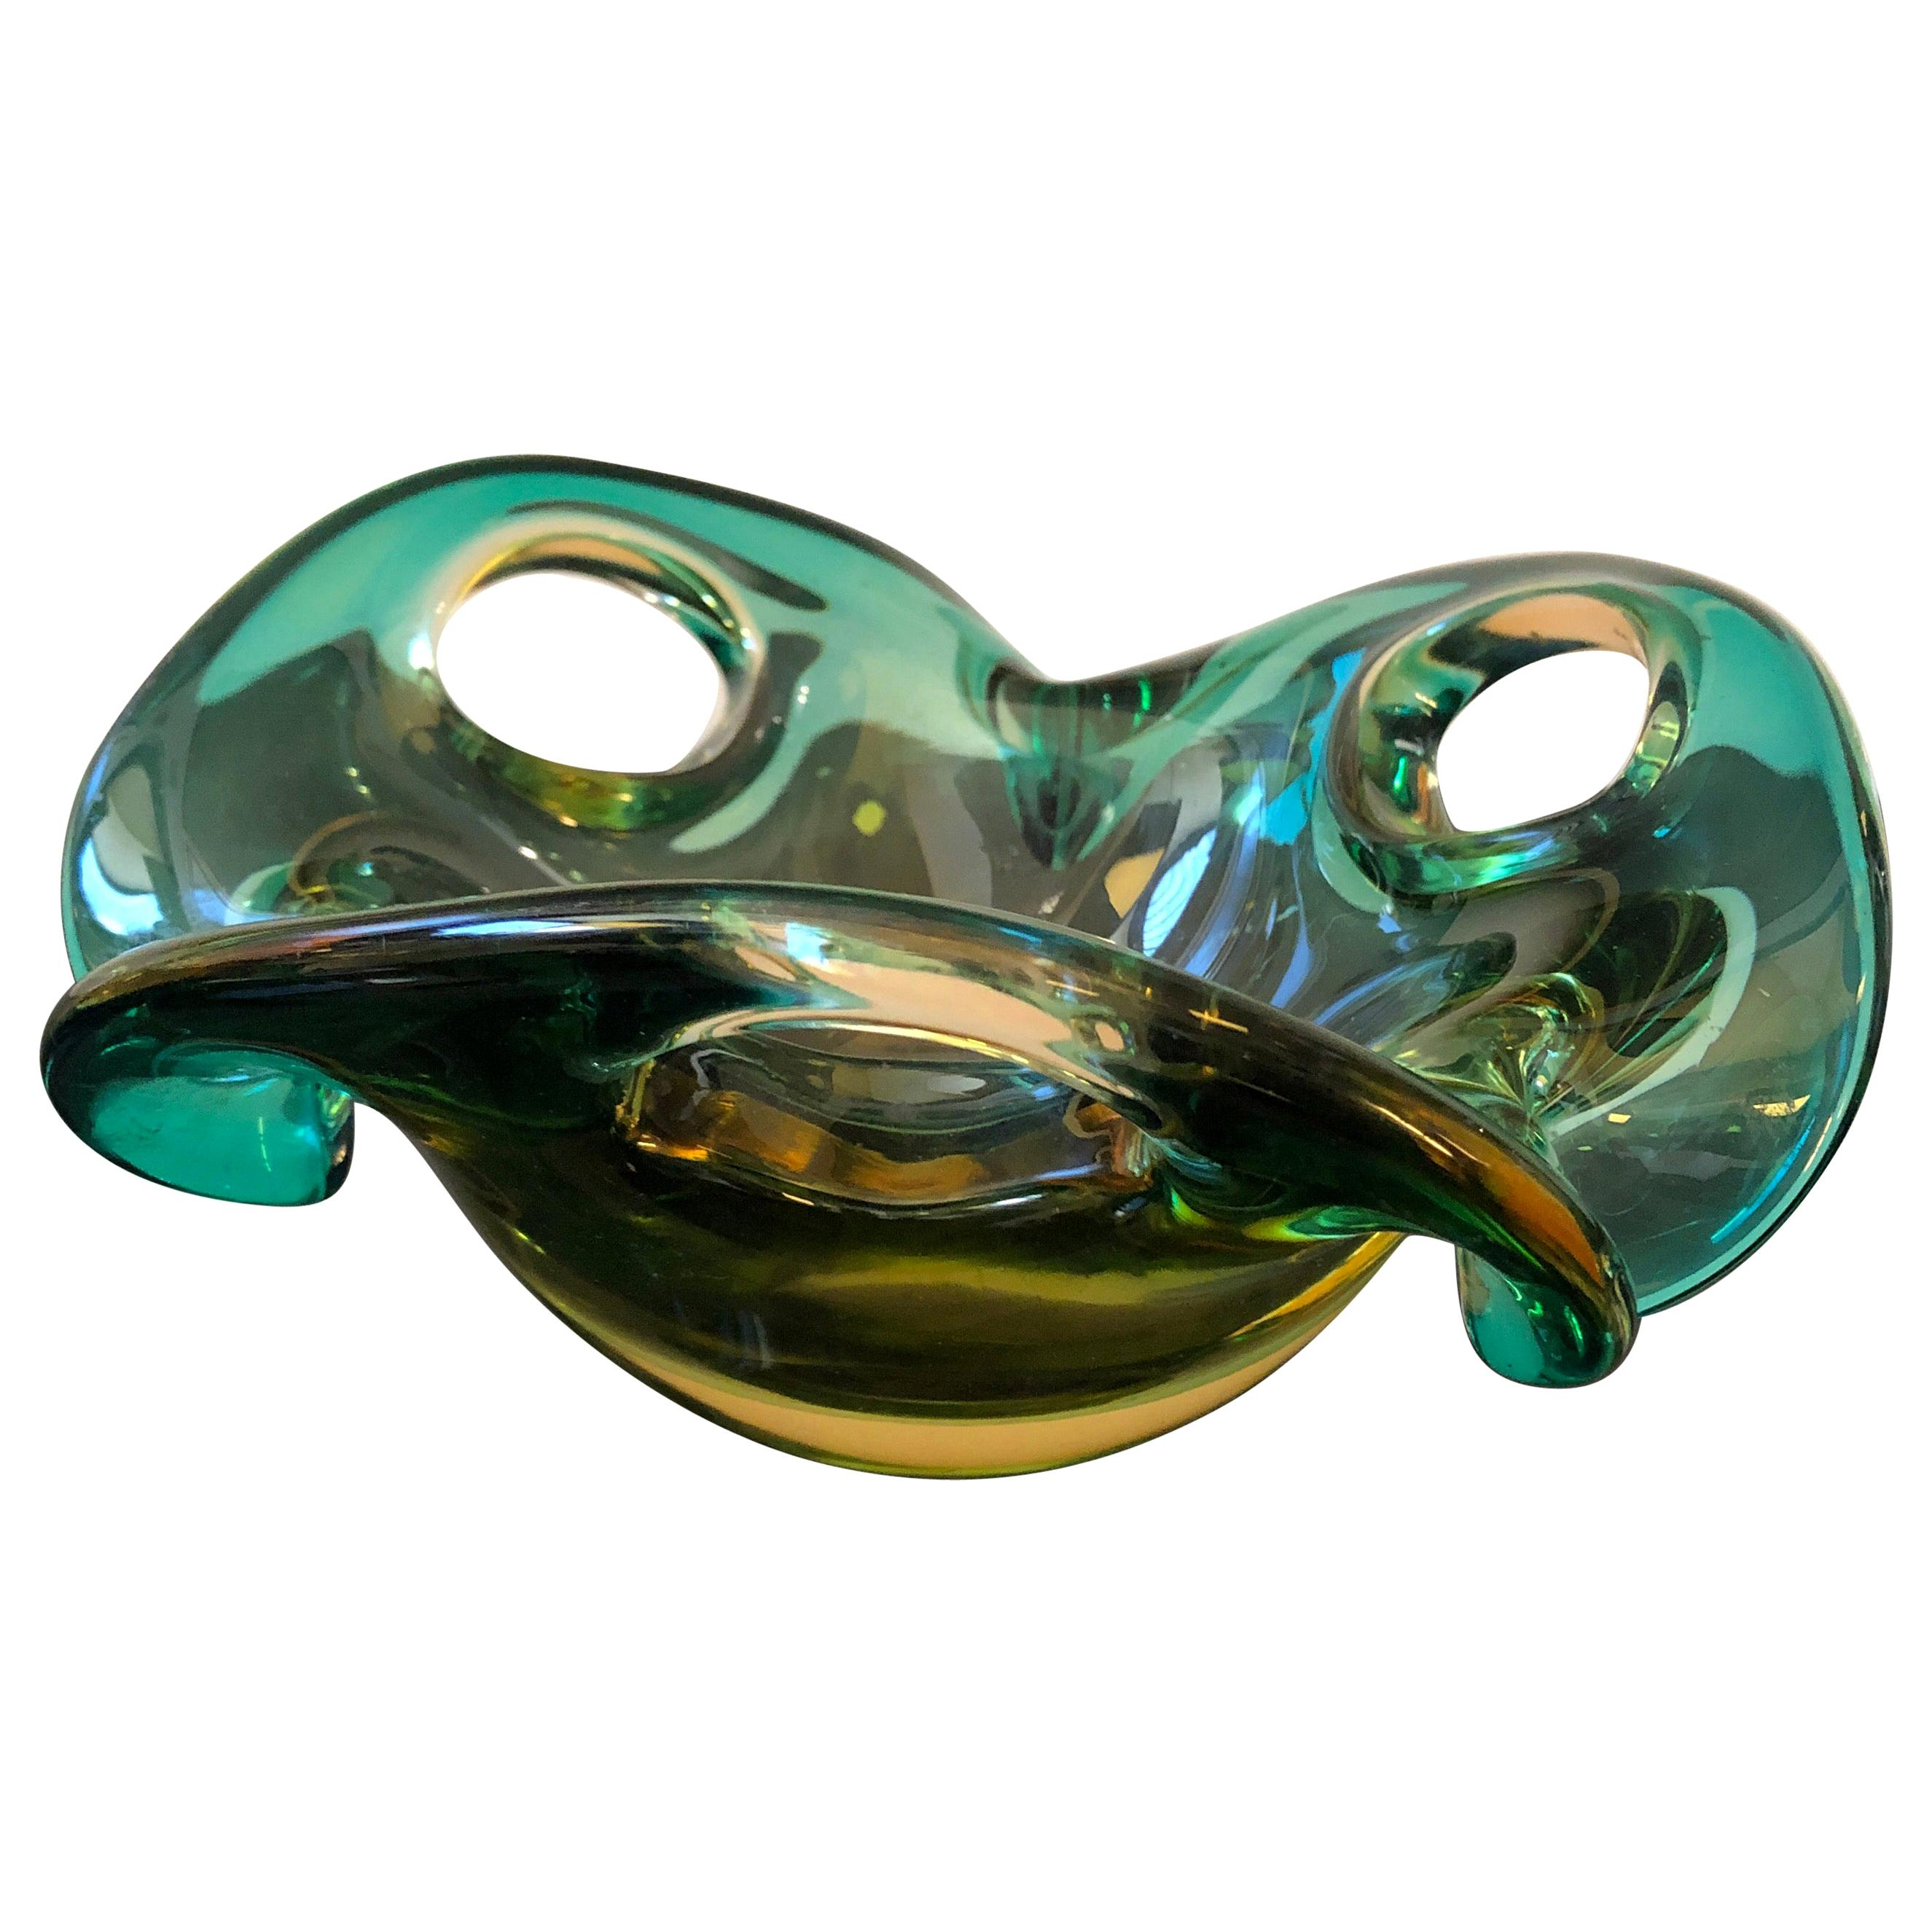 1970s Mid-Century Modern Sommerso Murano Glass Bowl by Seguso